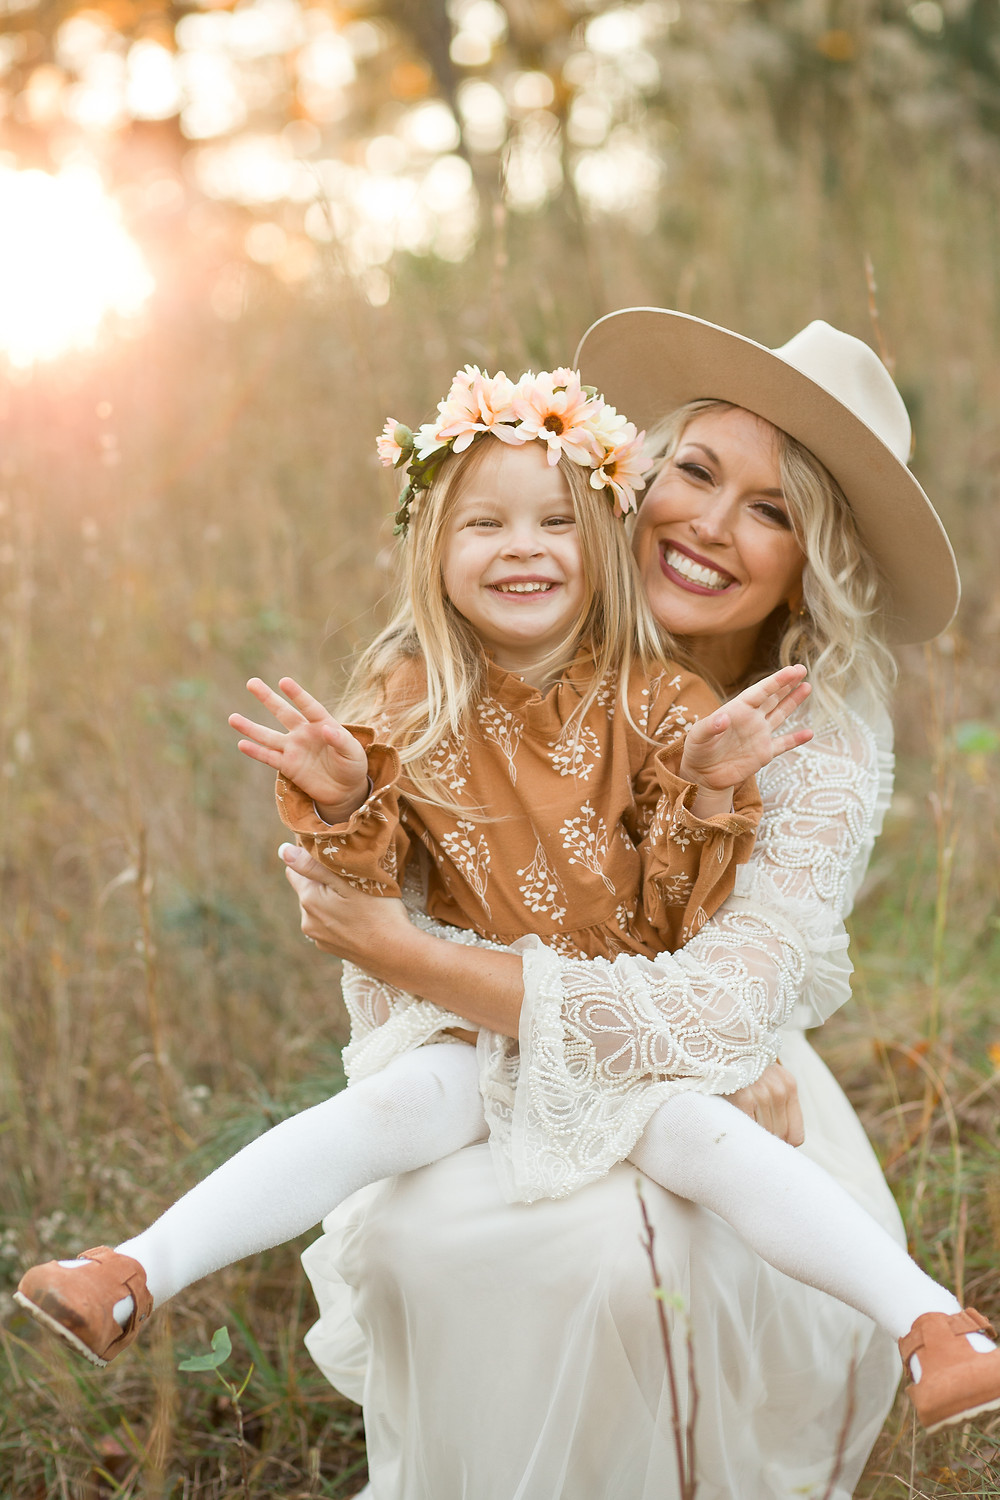 Mom holds smiling daughter in her lap in a grassy field, London Adelaide family photography, Asheville family photographers, tips for planning family photos, lifestyle blog